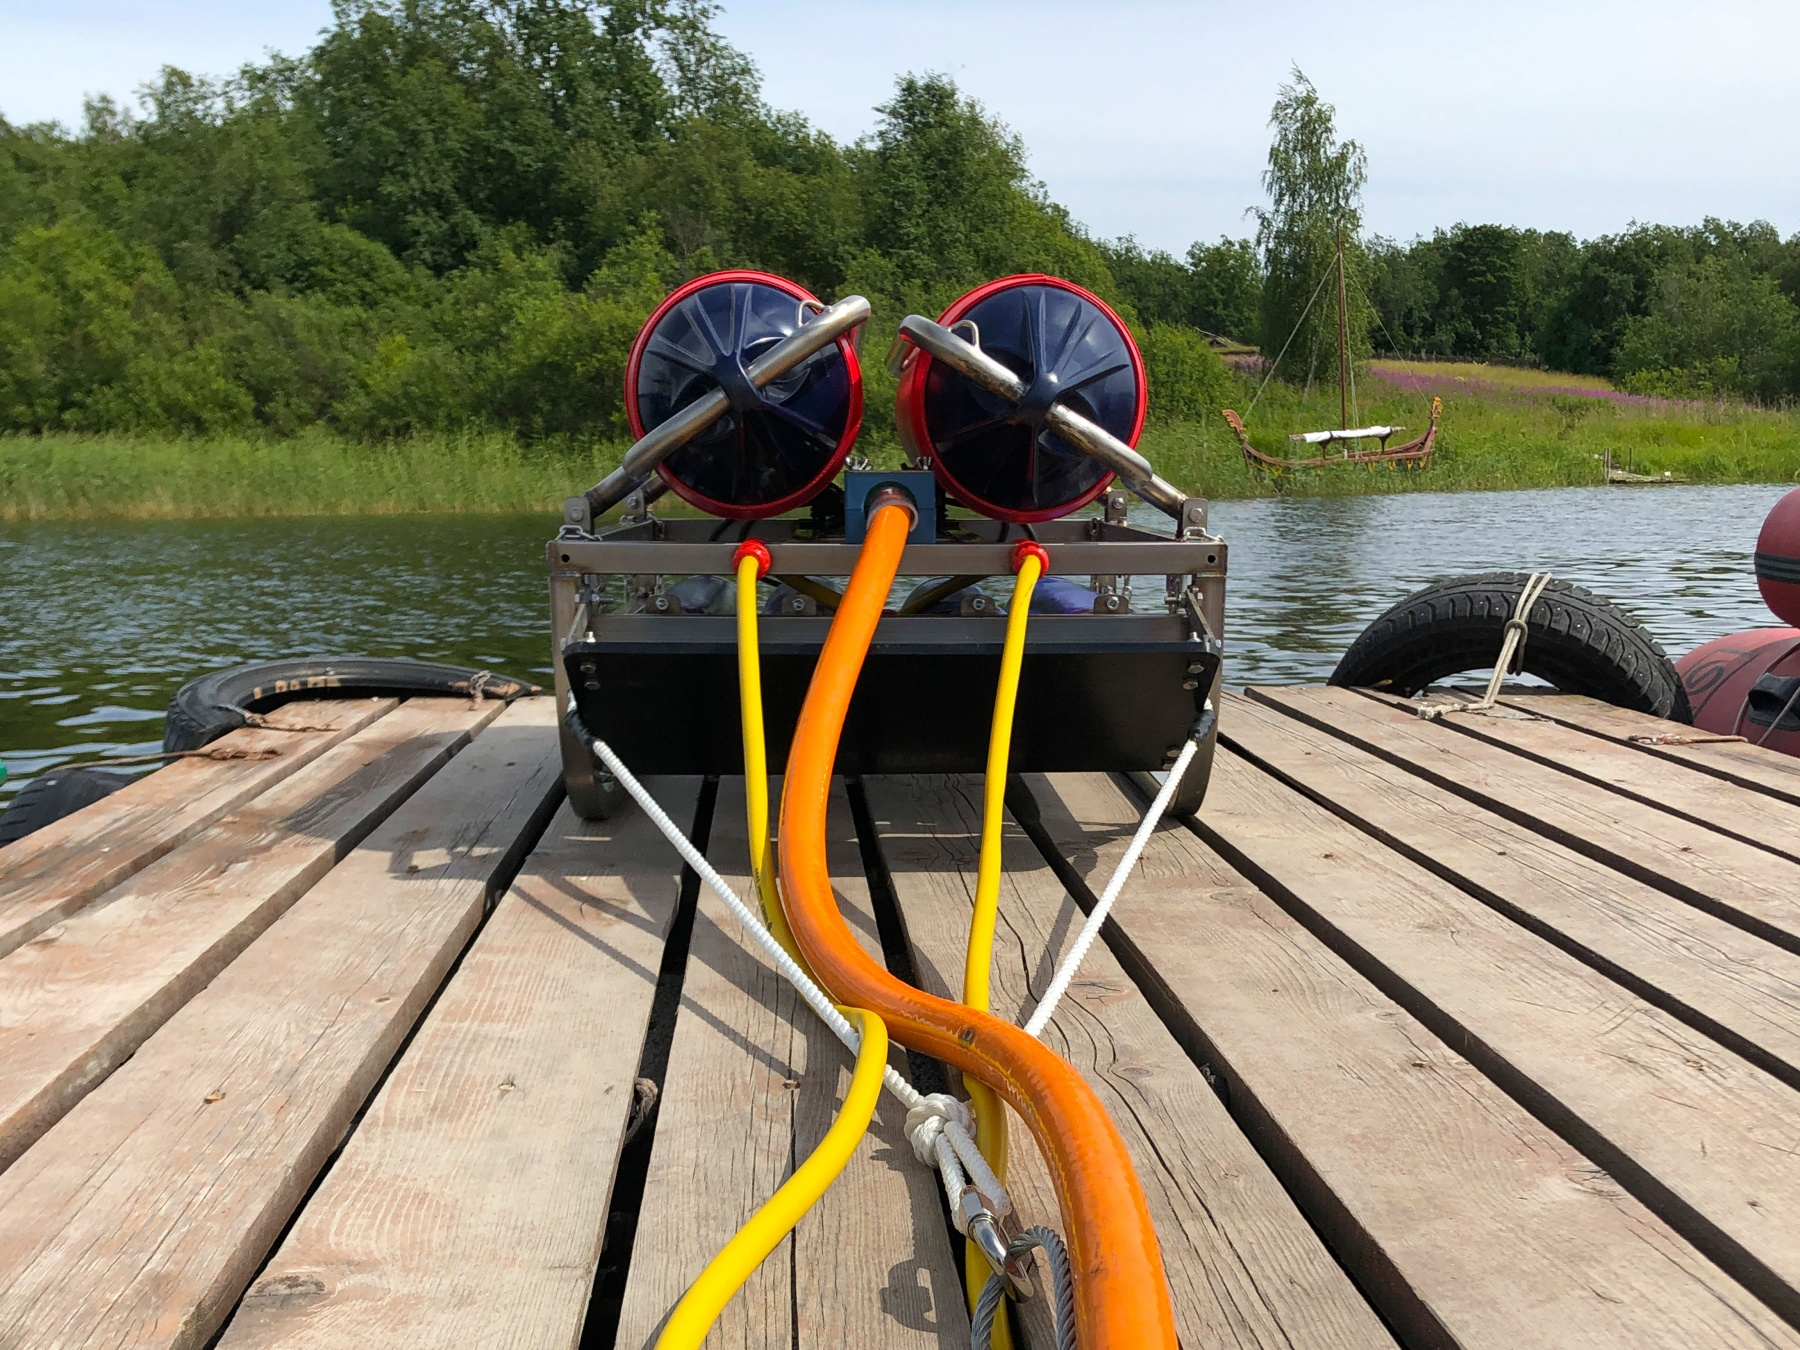 FWS-250 Fresh water sparker with HV power cable and water hoses